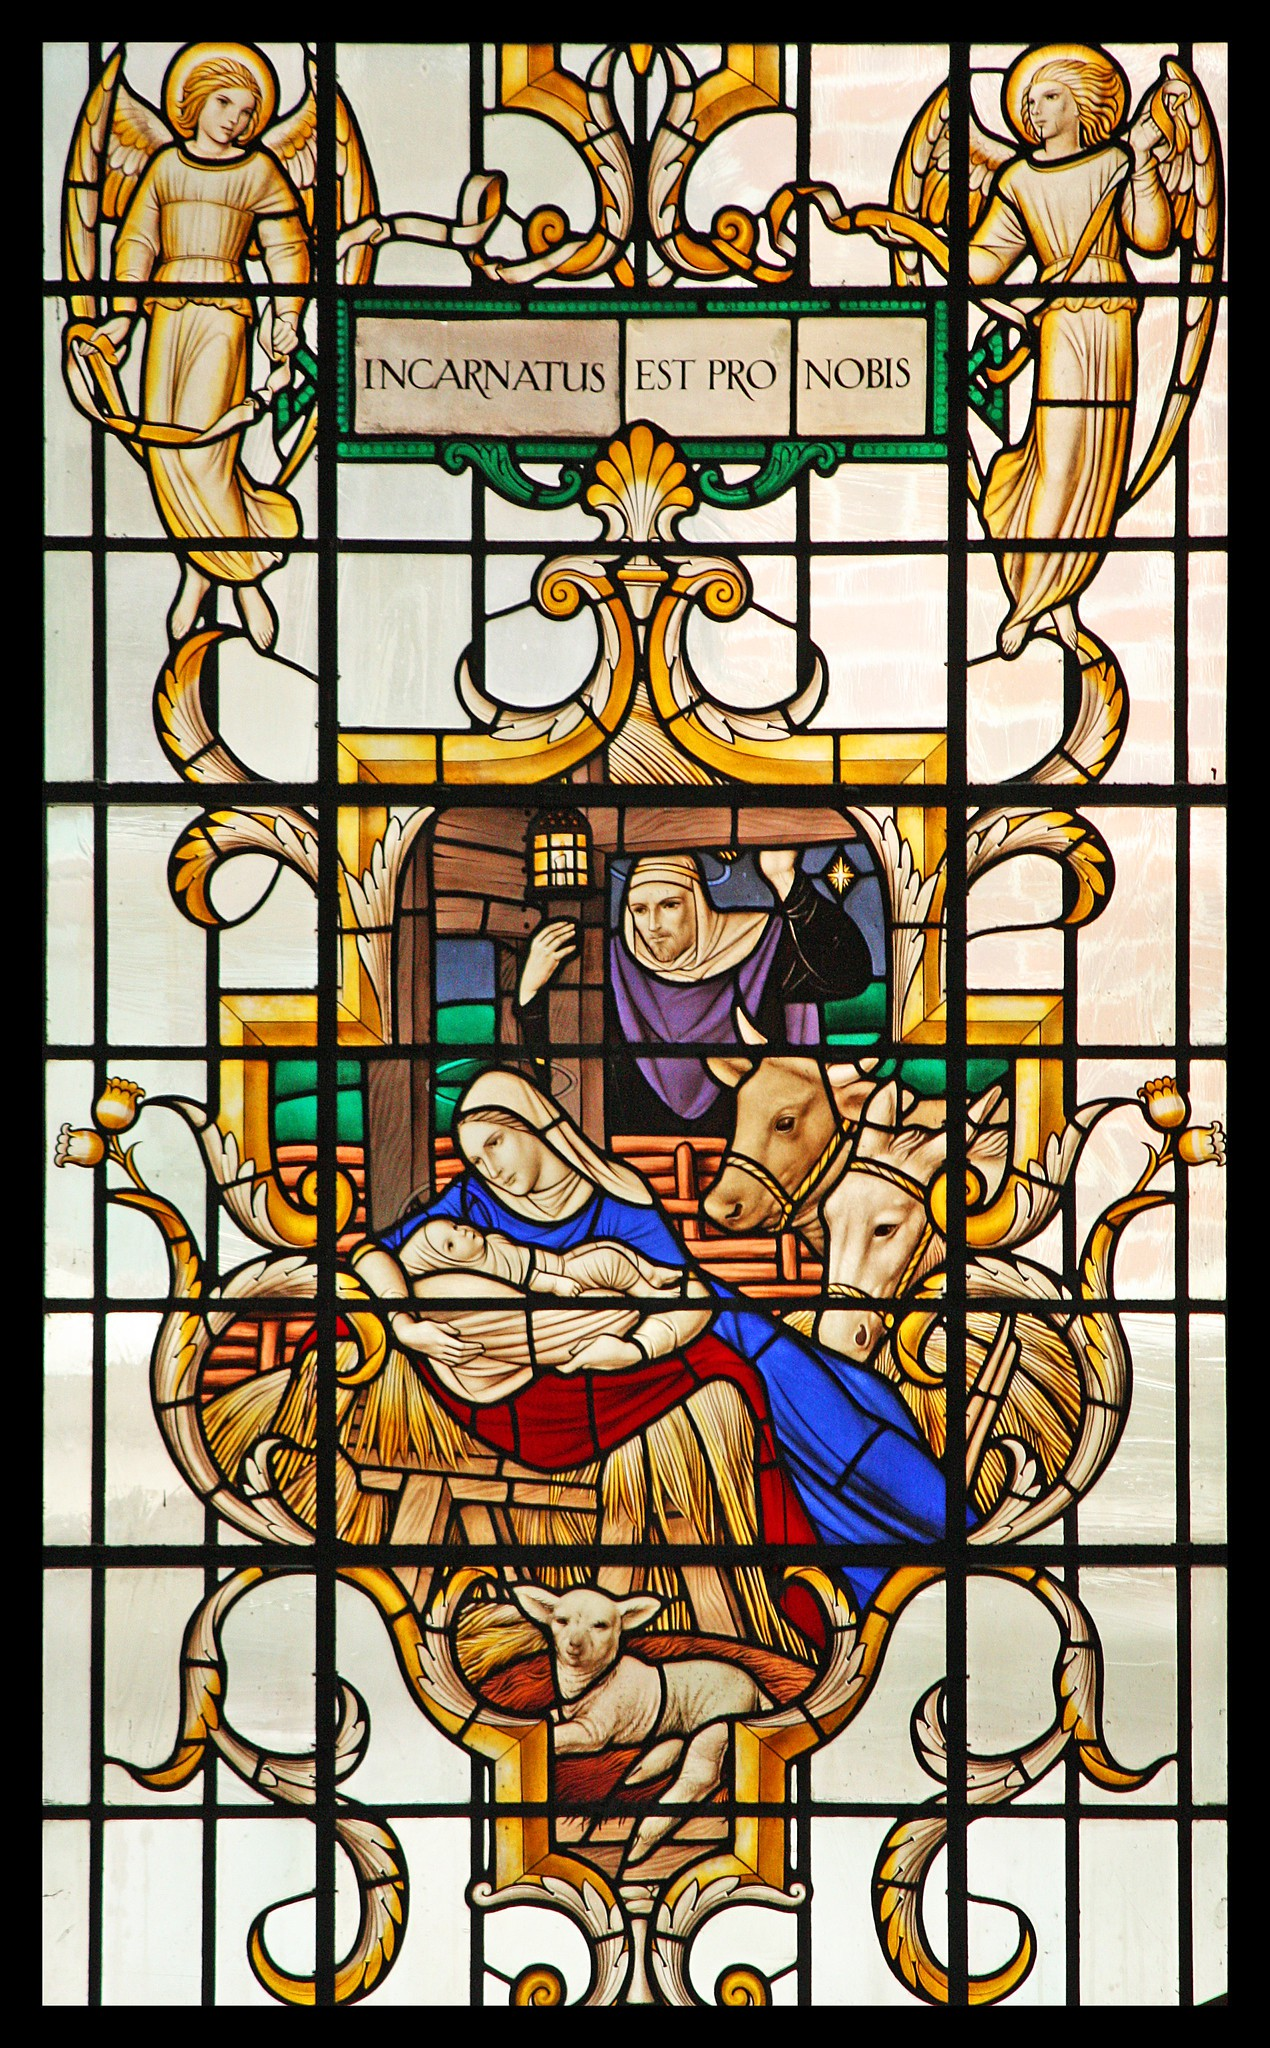 Stained glass window showing the birth of Christ, surrounded by Mary and Jesus, and a cow, donkey and lamb, with the text 'incarnatus est pro nobilis'